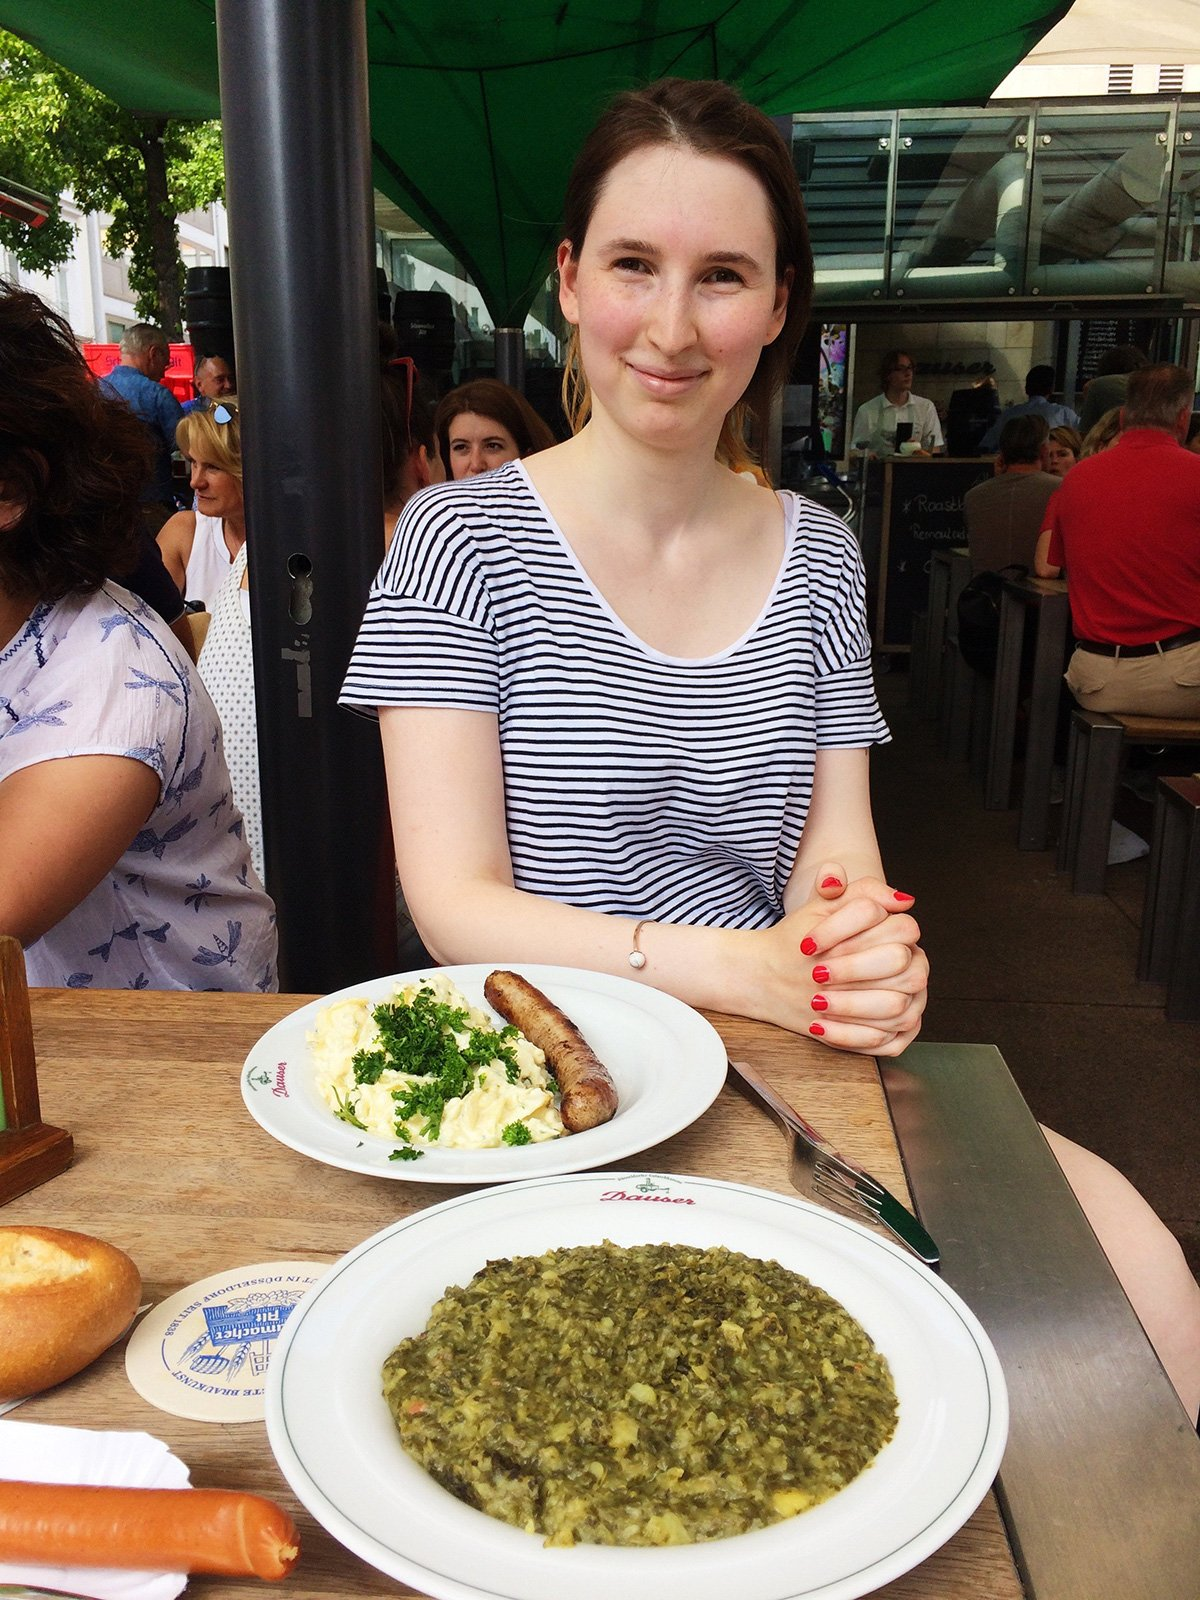 What to do in Dusseldorf Germany in a day: eat like a local. Girl in striped tshirt sitting before a table with plates filled with sausage